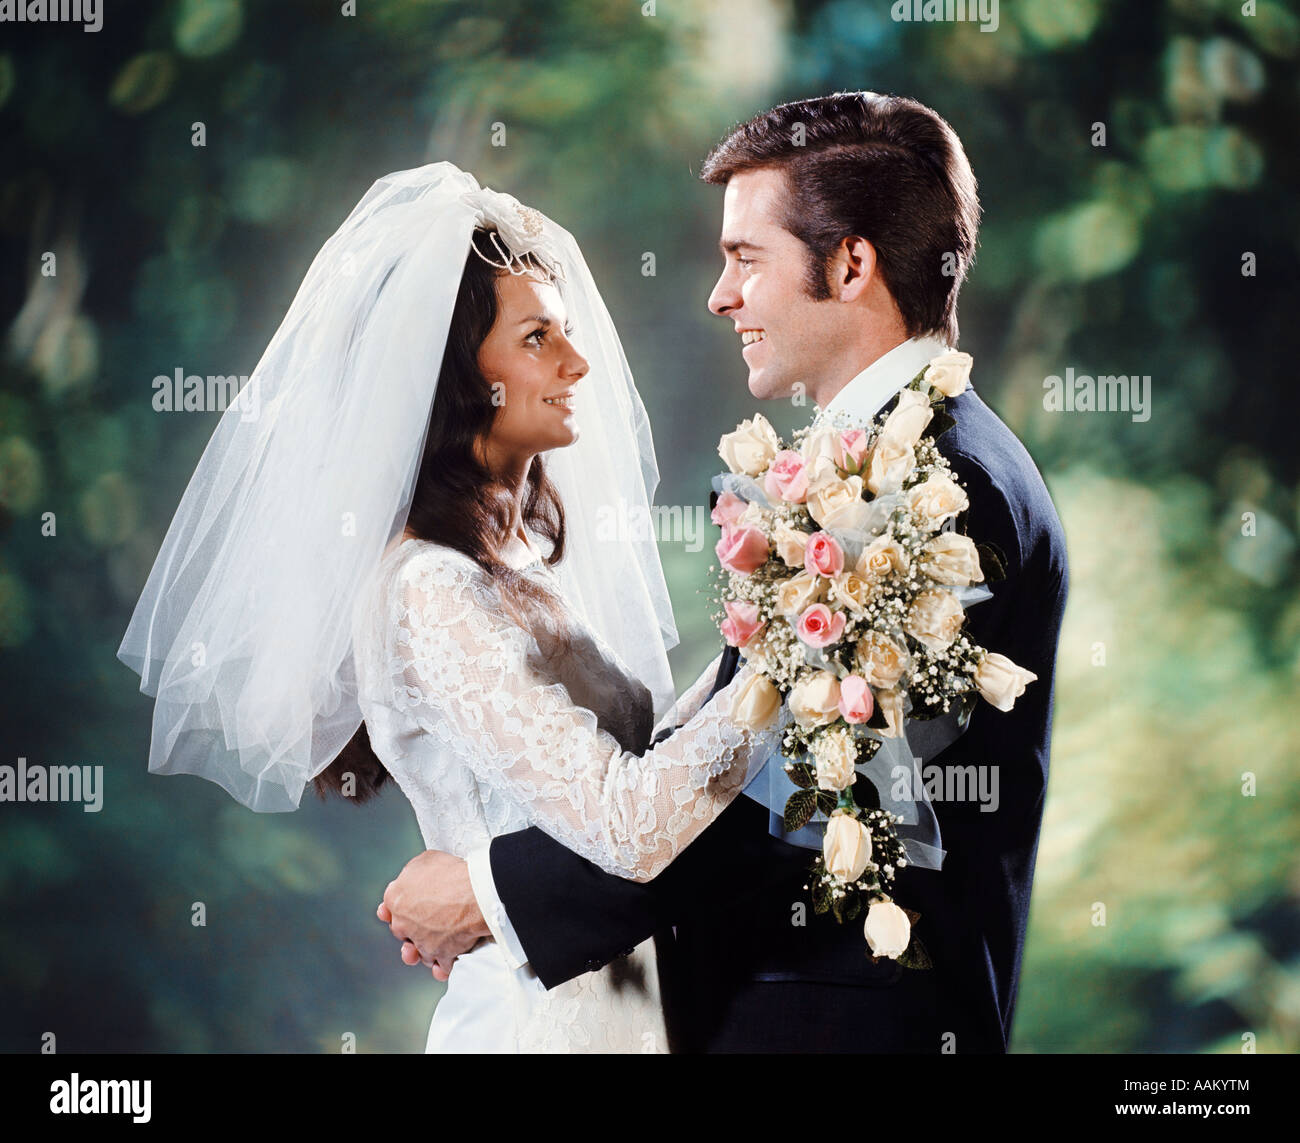 1970 EPOUSE GROOM HUGGING ADOPTER FACE À FACE HOMME FEMME COUPLE BOUQUET Photo Stock